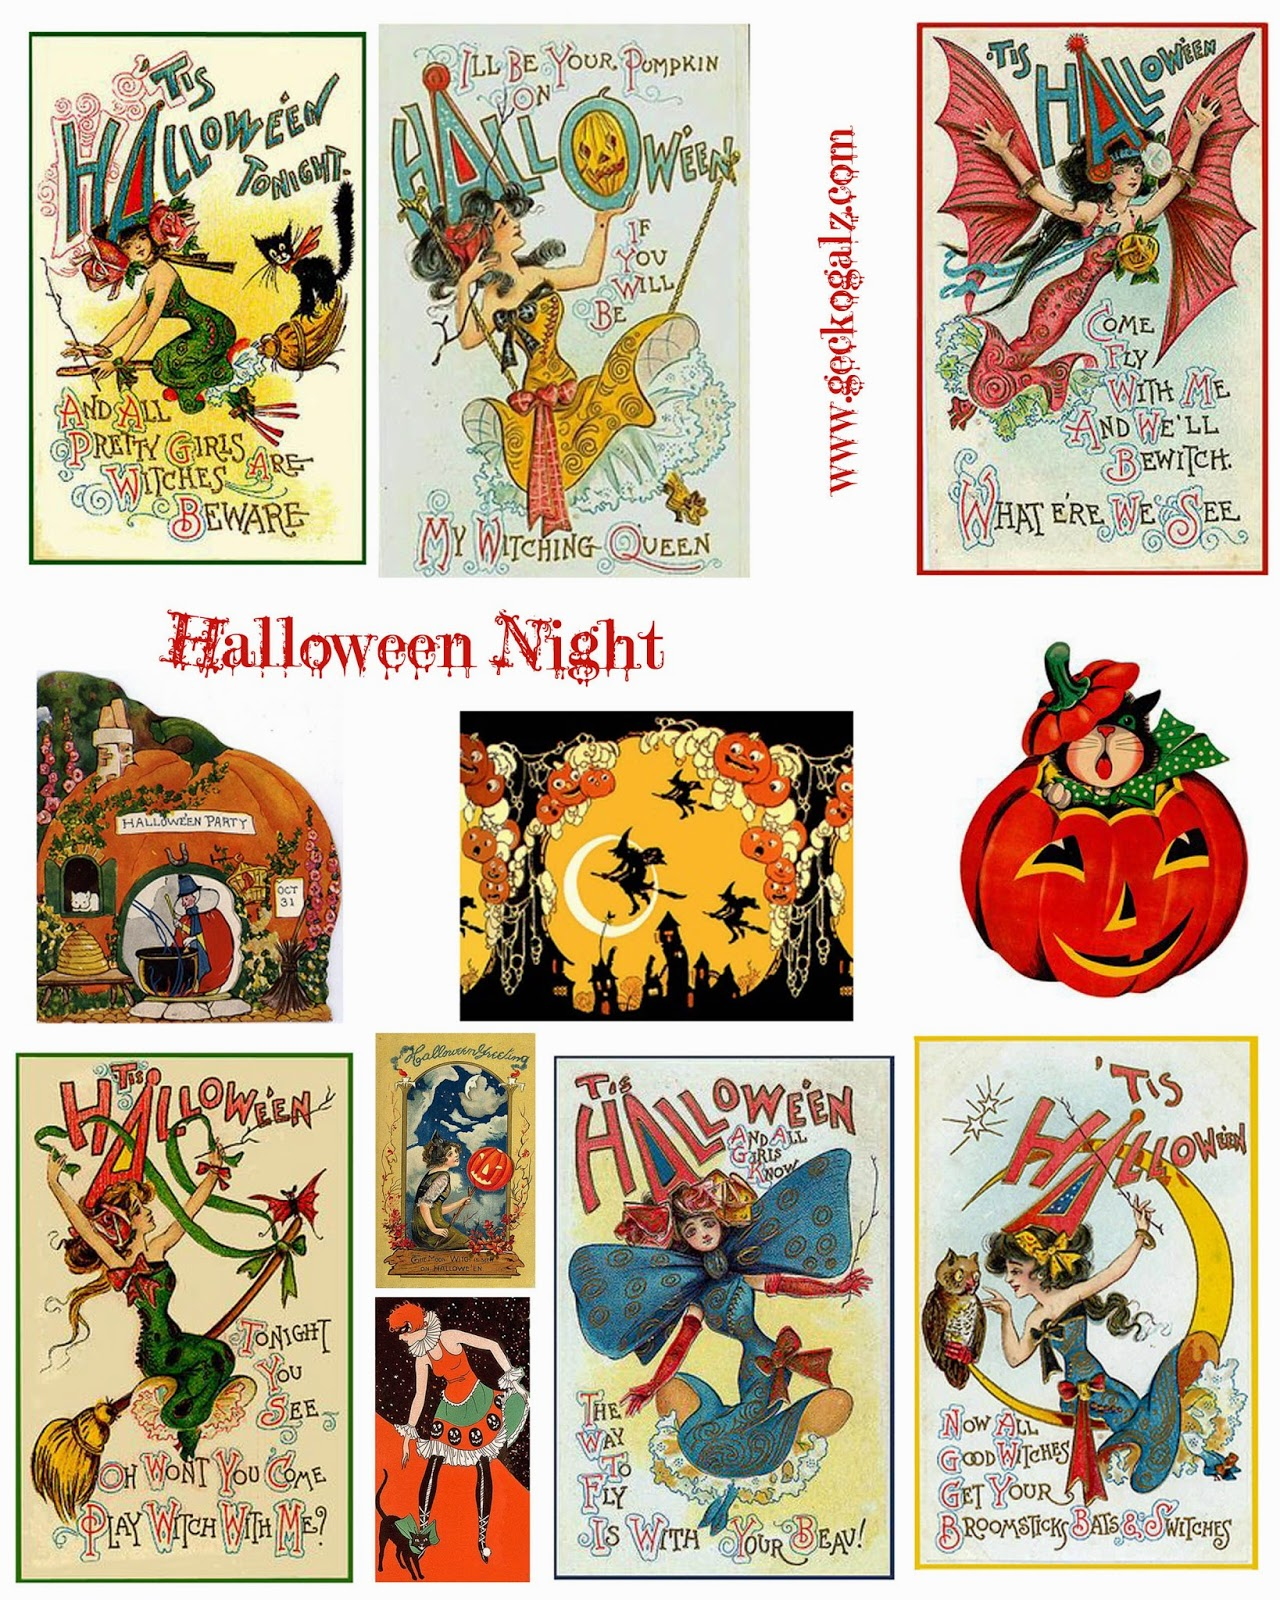 https://sites.google.com/site/geckogalzdesigns/halloween-night